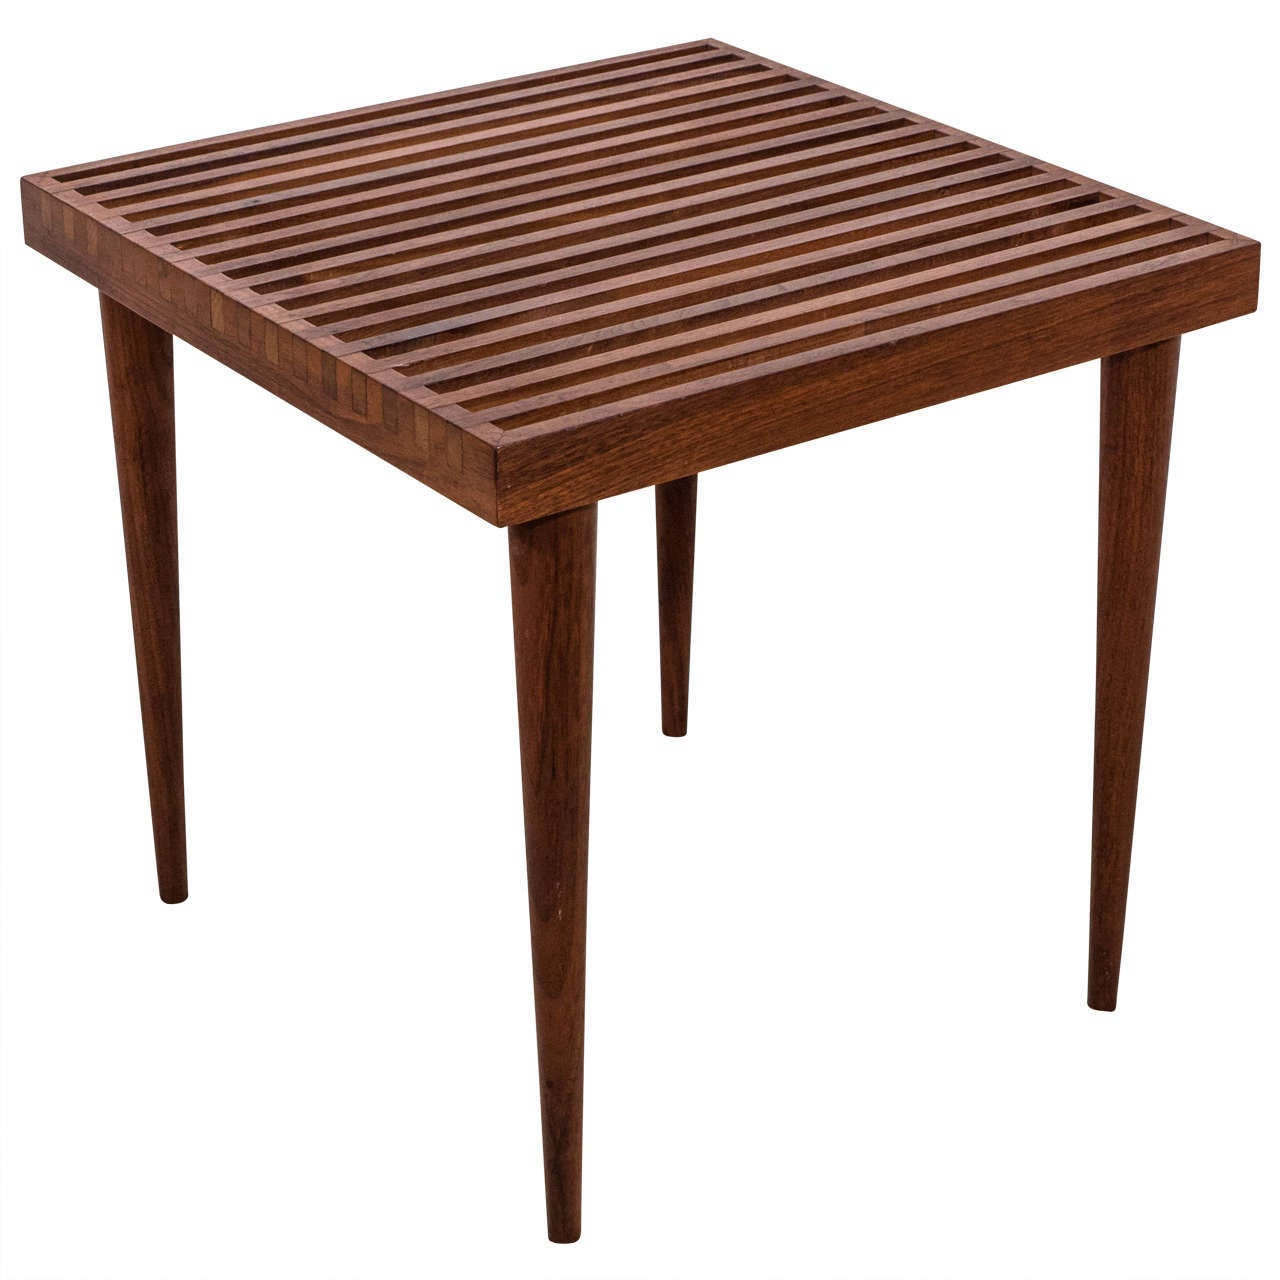 Vintage scandinavian modern slat wood side or end table for Contemporary end tables